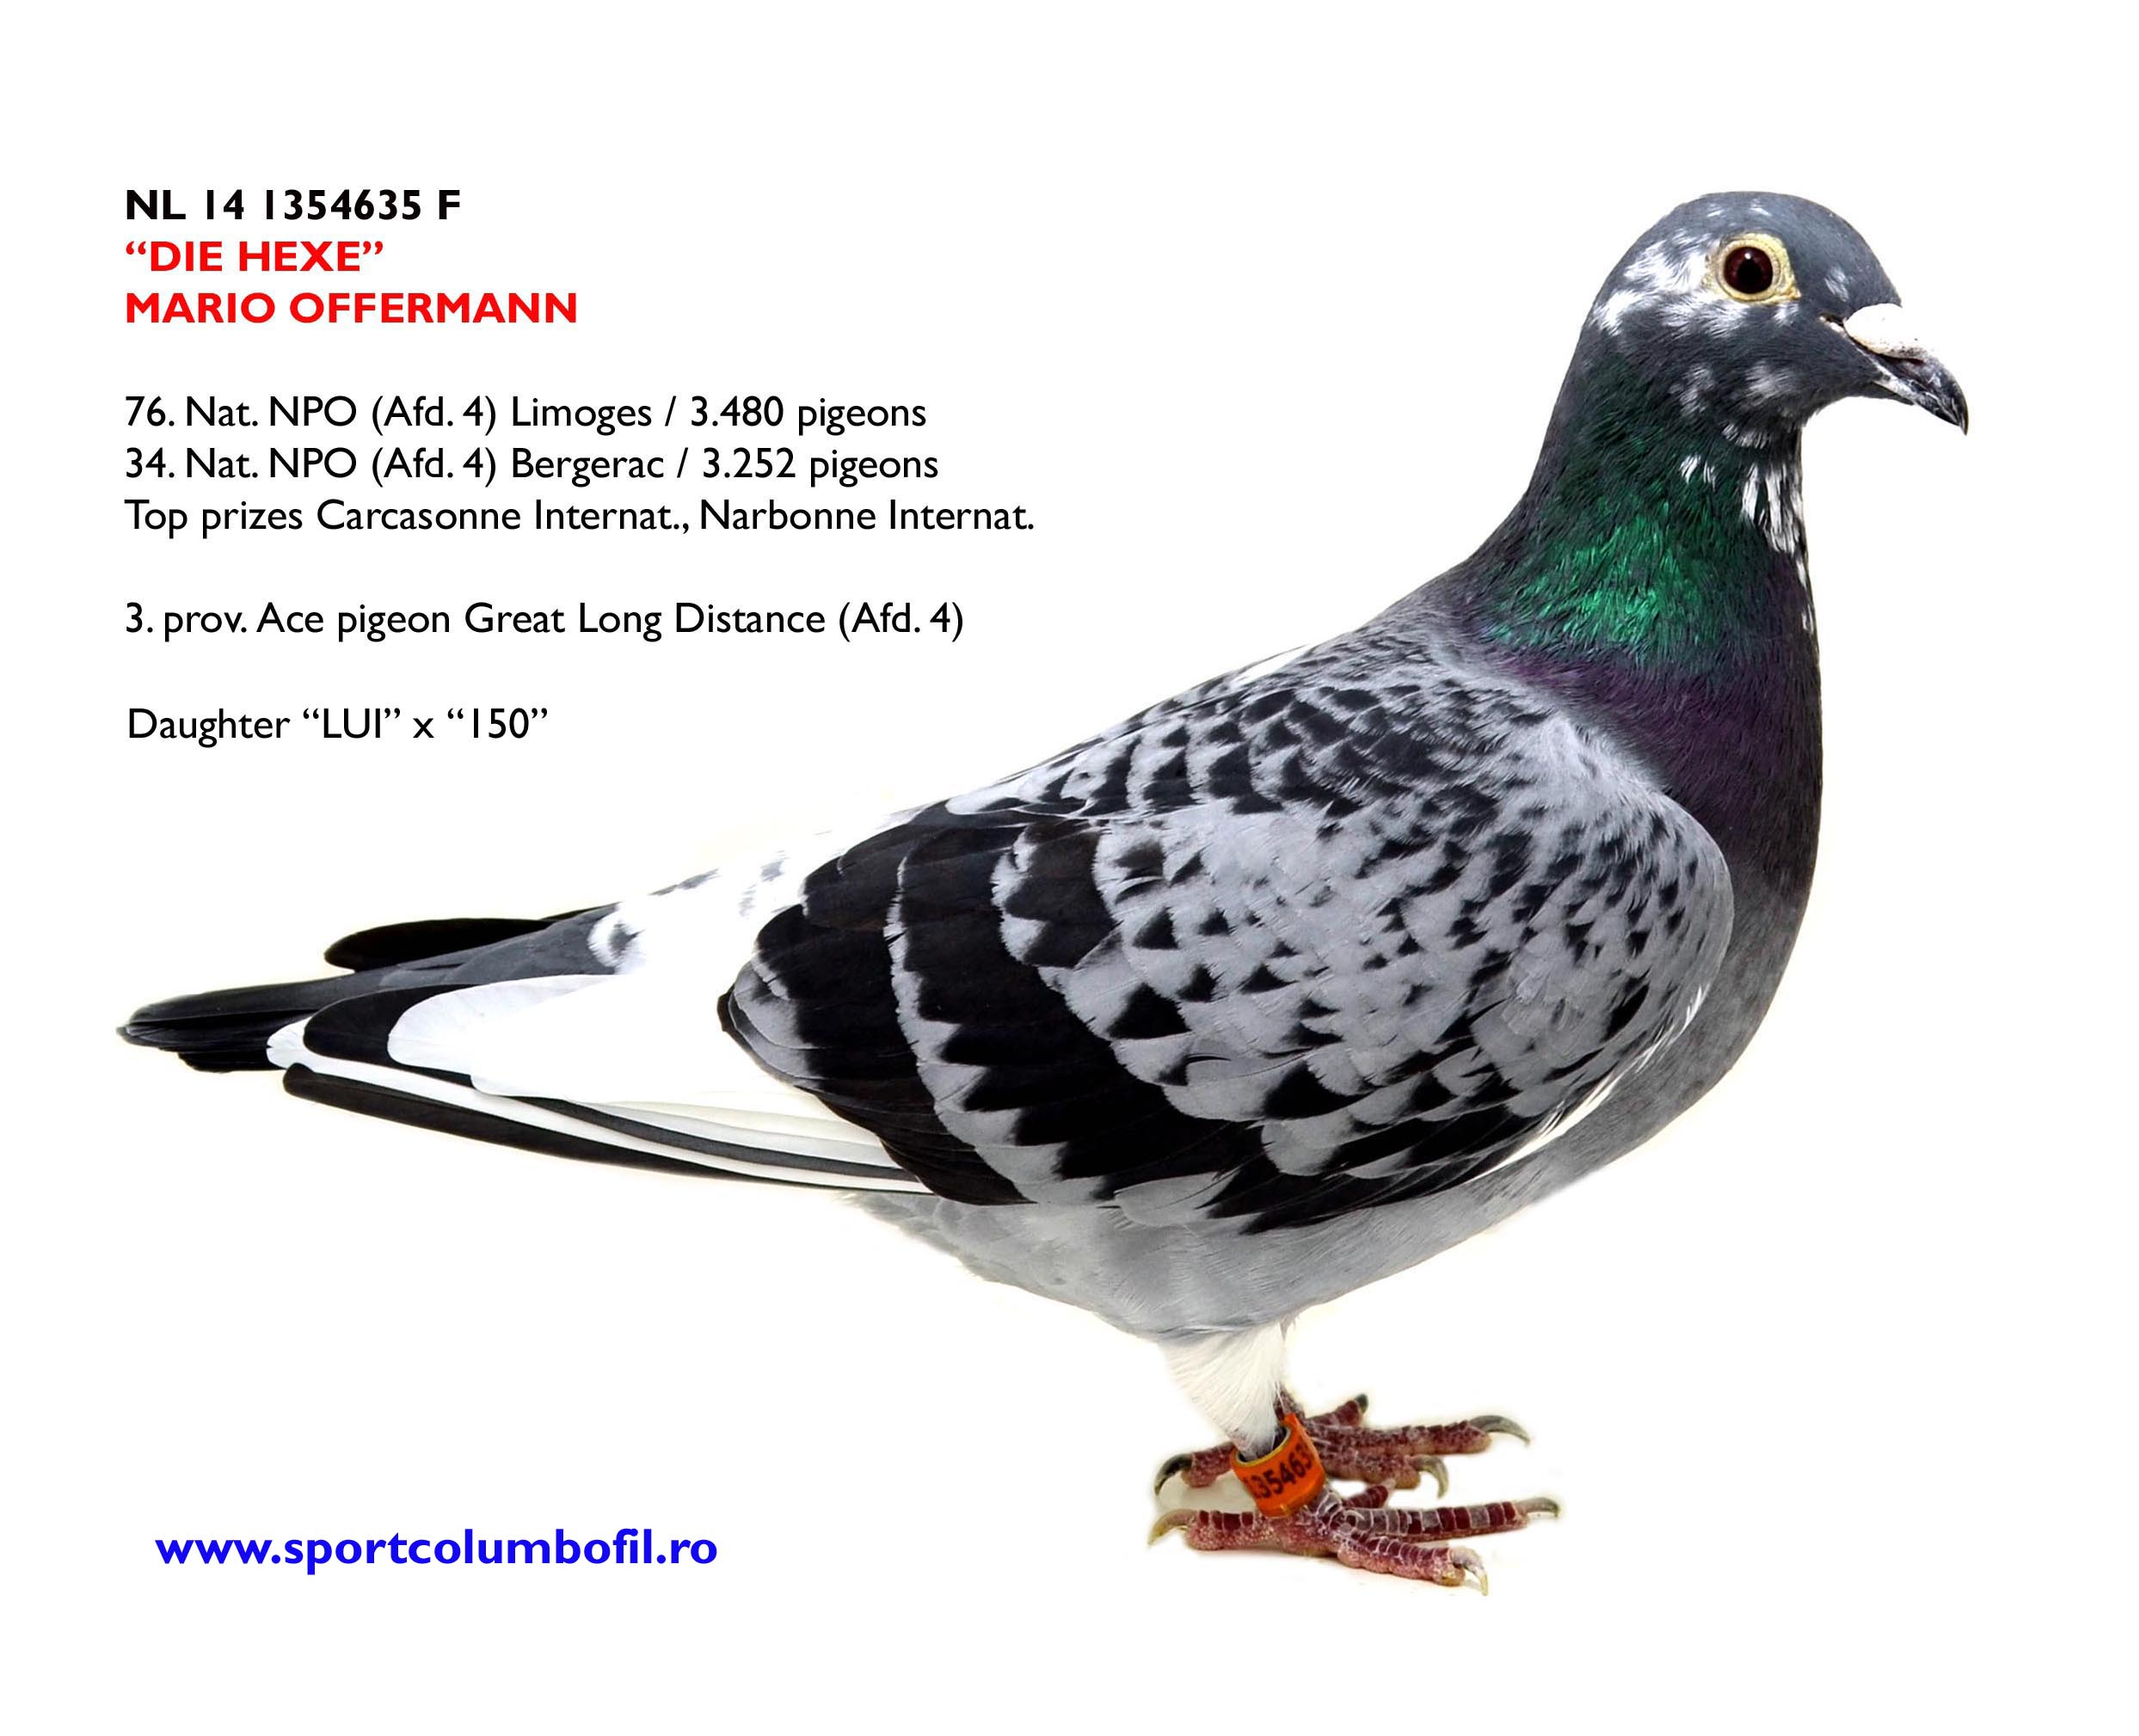 NL 15 1126025 M - 252 Nat Marseille; half brother DIE HEXE 3 prov Ace pigeon